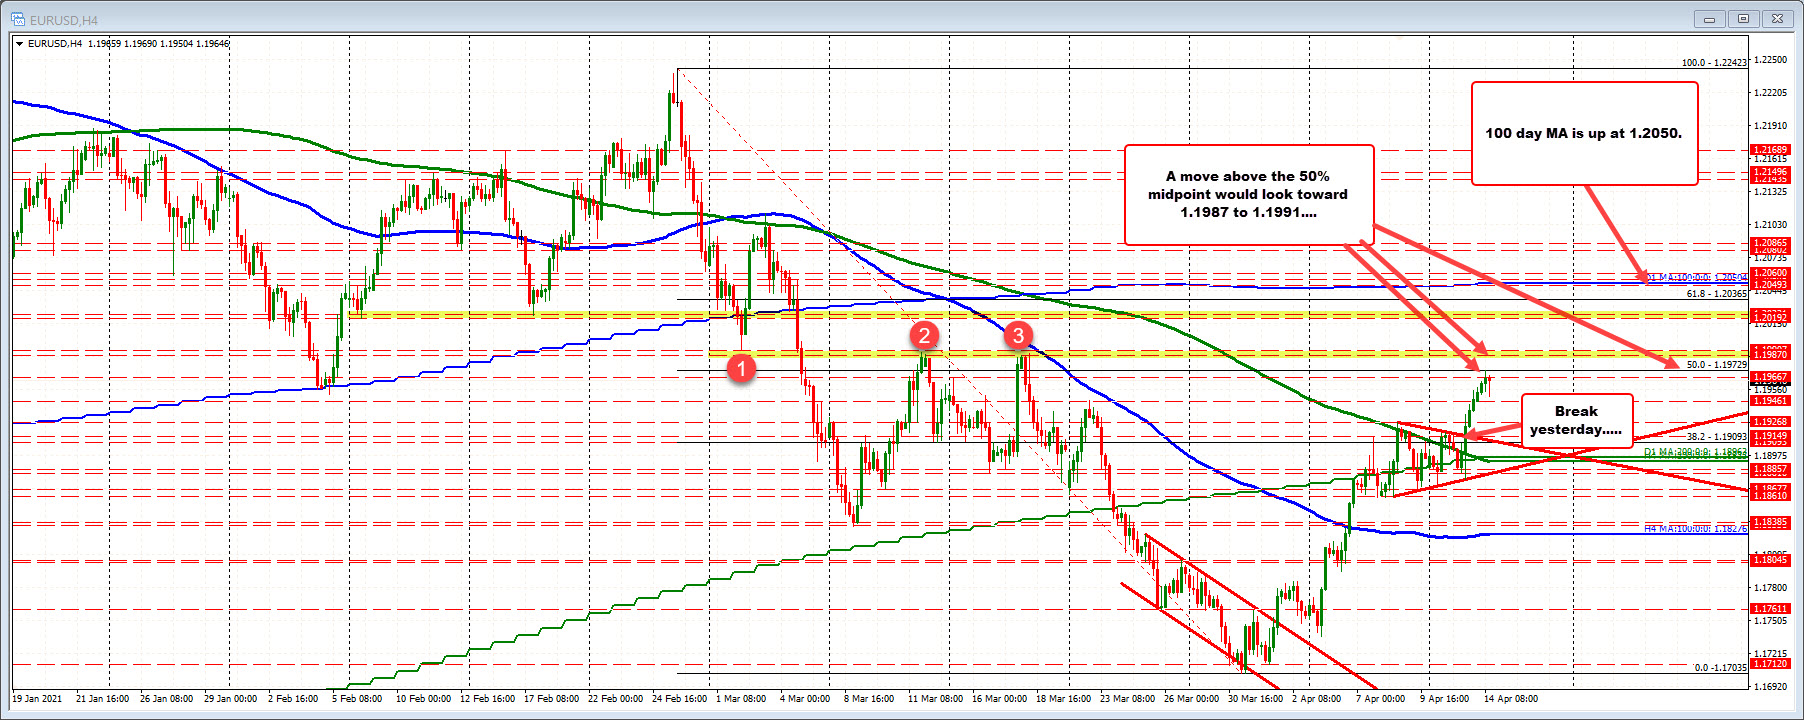 The 4 hour chart targets